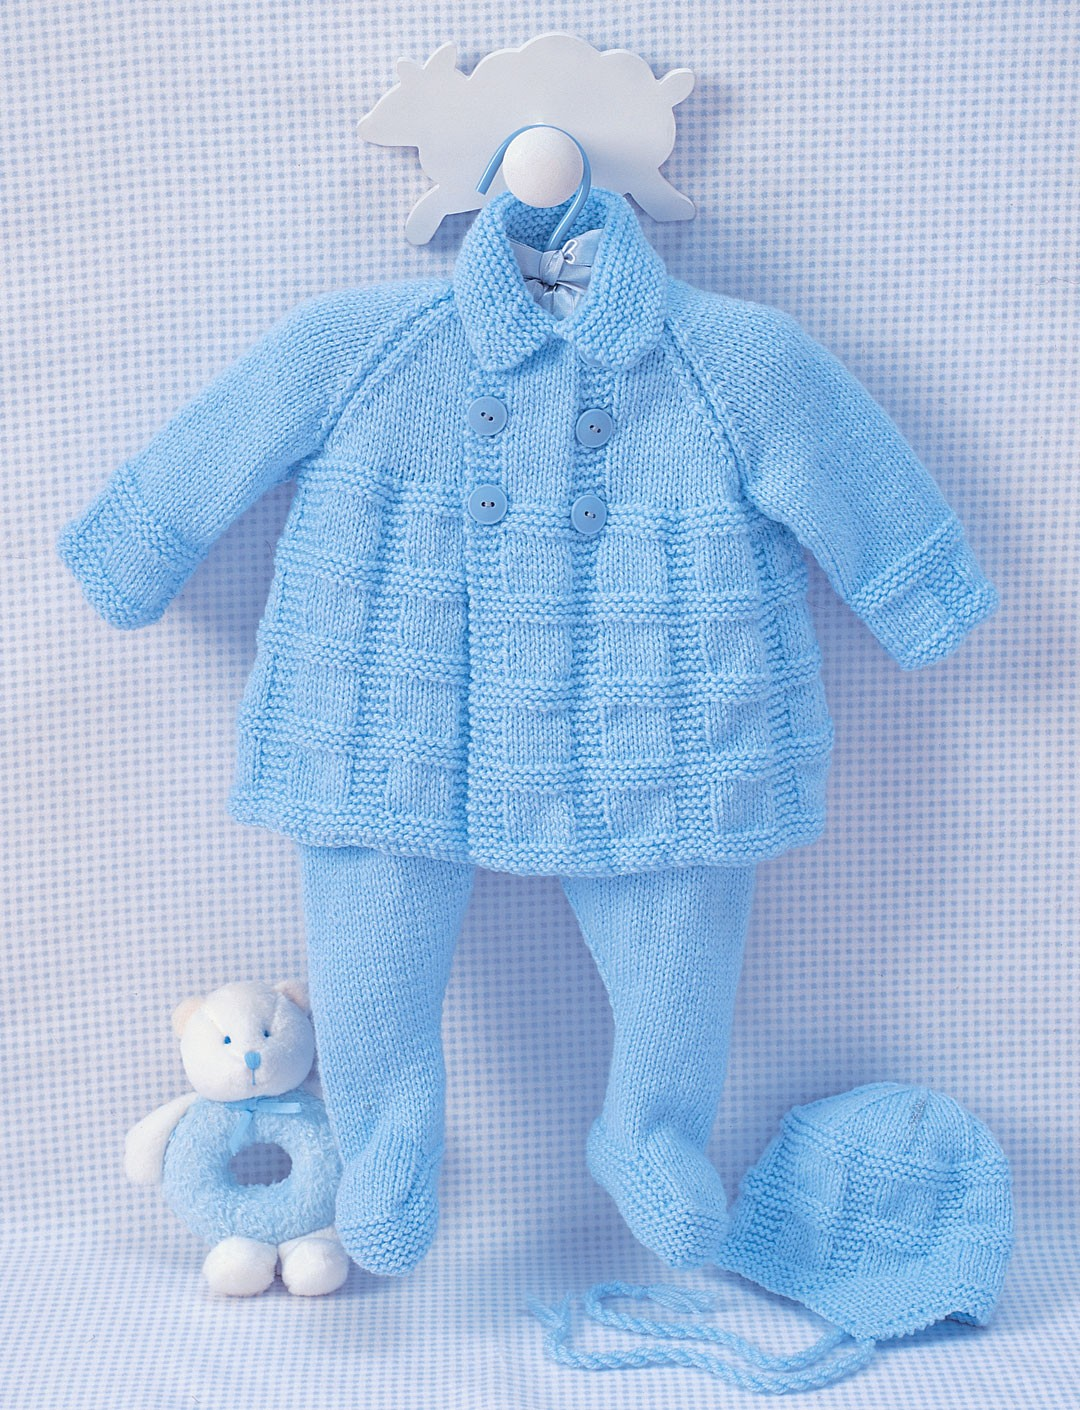 Bernat Pram Set, Knit Pattern Yarnspirations